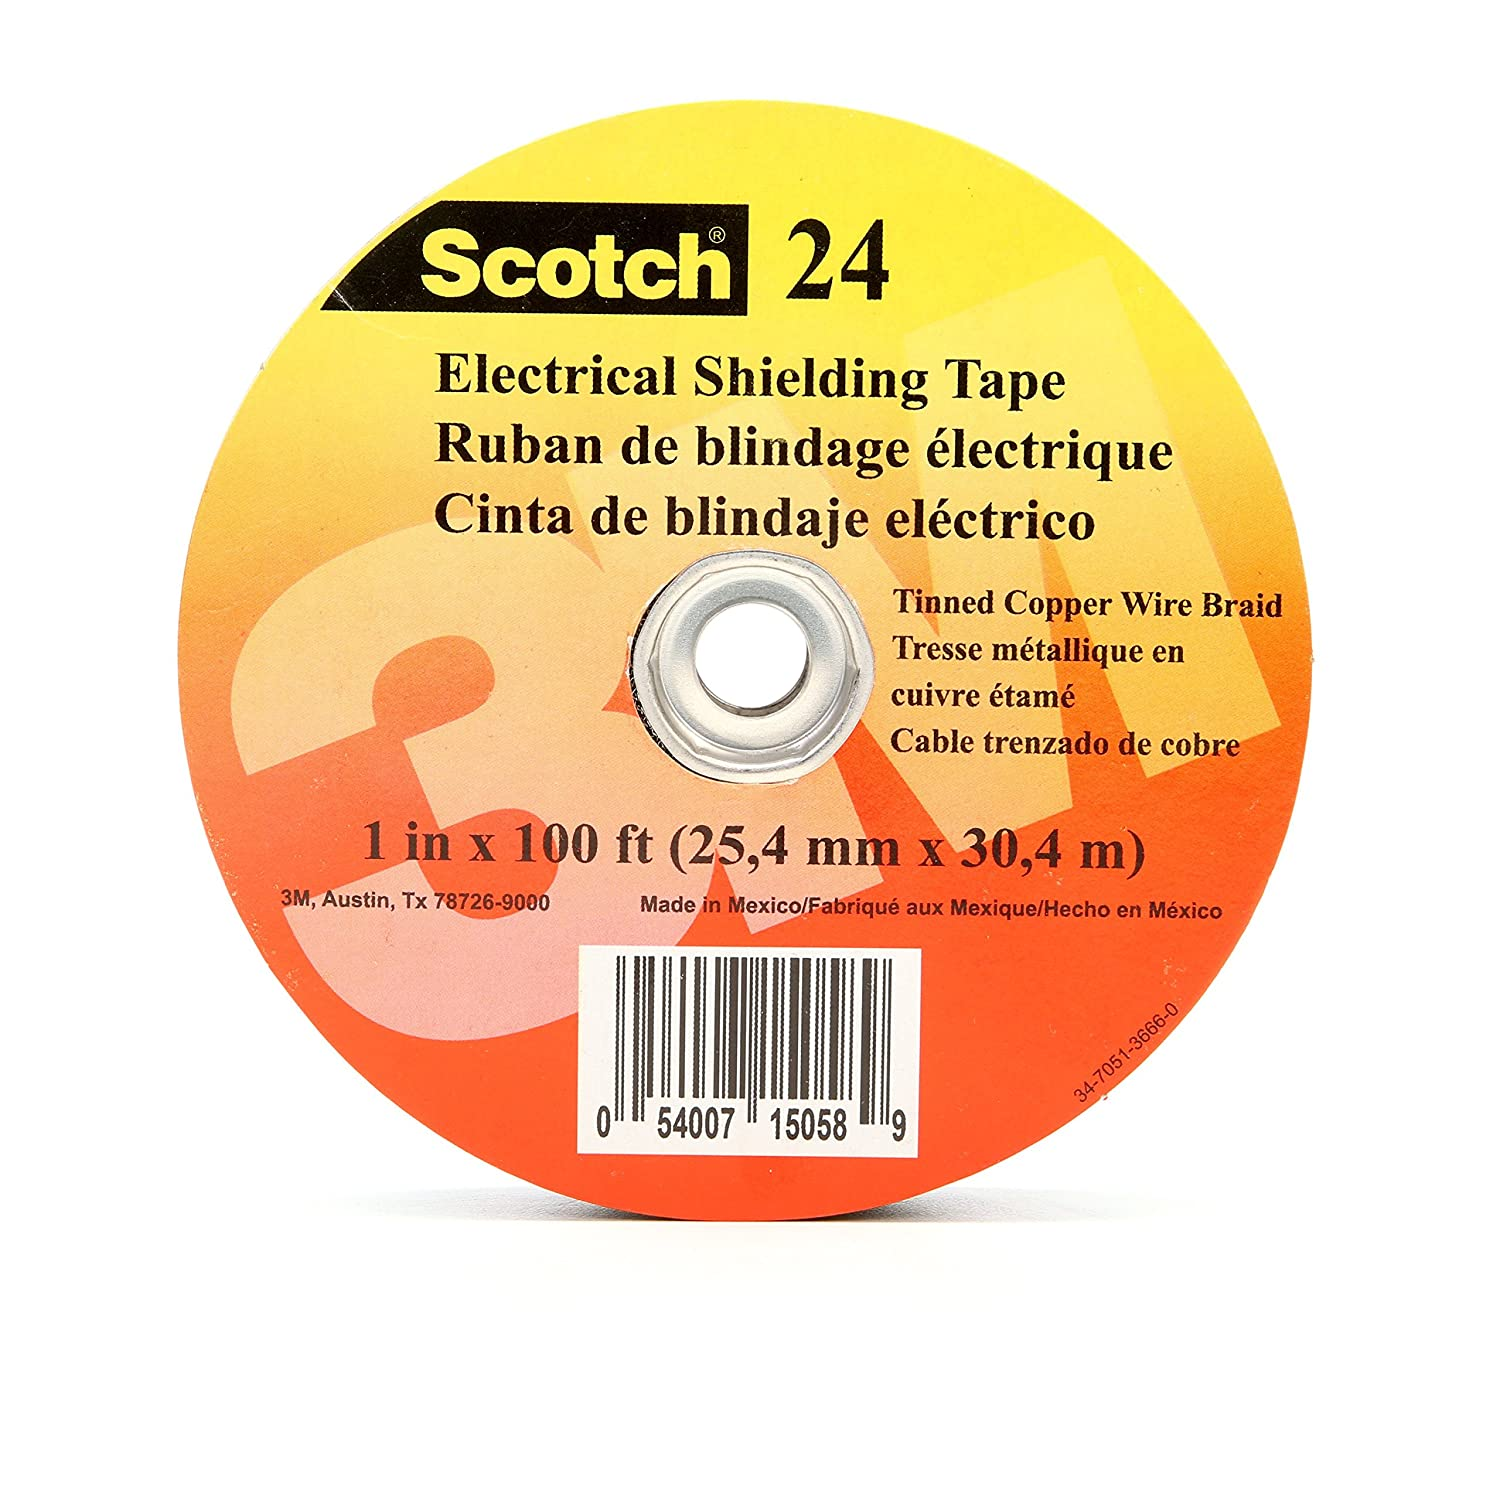 Image of 3M 24-1X100FT Scotch Electrical Shielding Tape